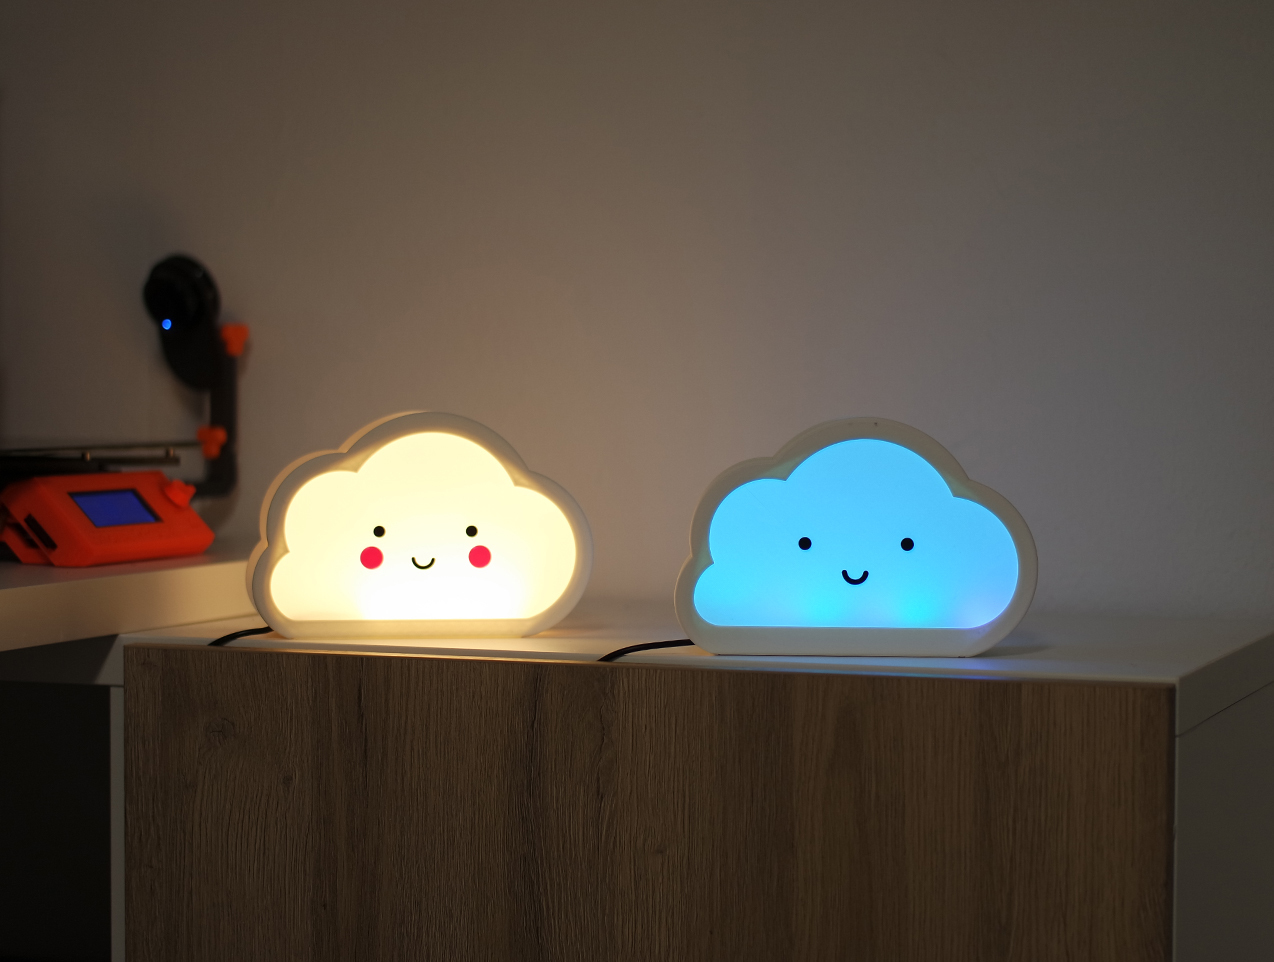 5.jpg Download free STL file Happy Cloud Lamps - With Casting Shadow Effect • 3D printable model, NKpolymers